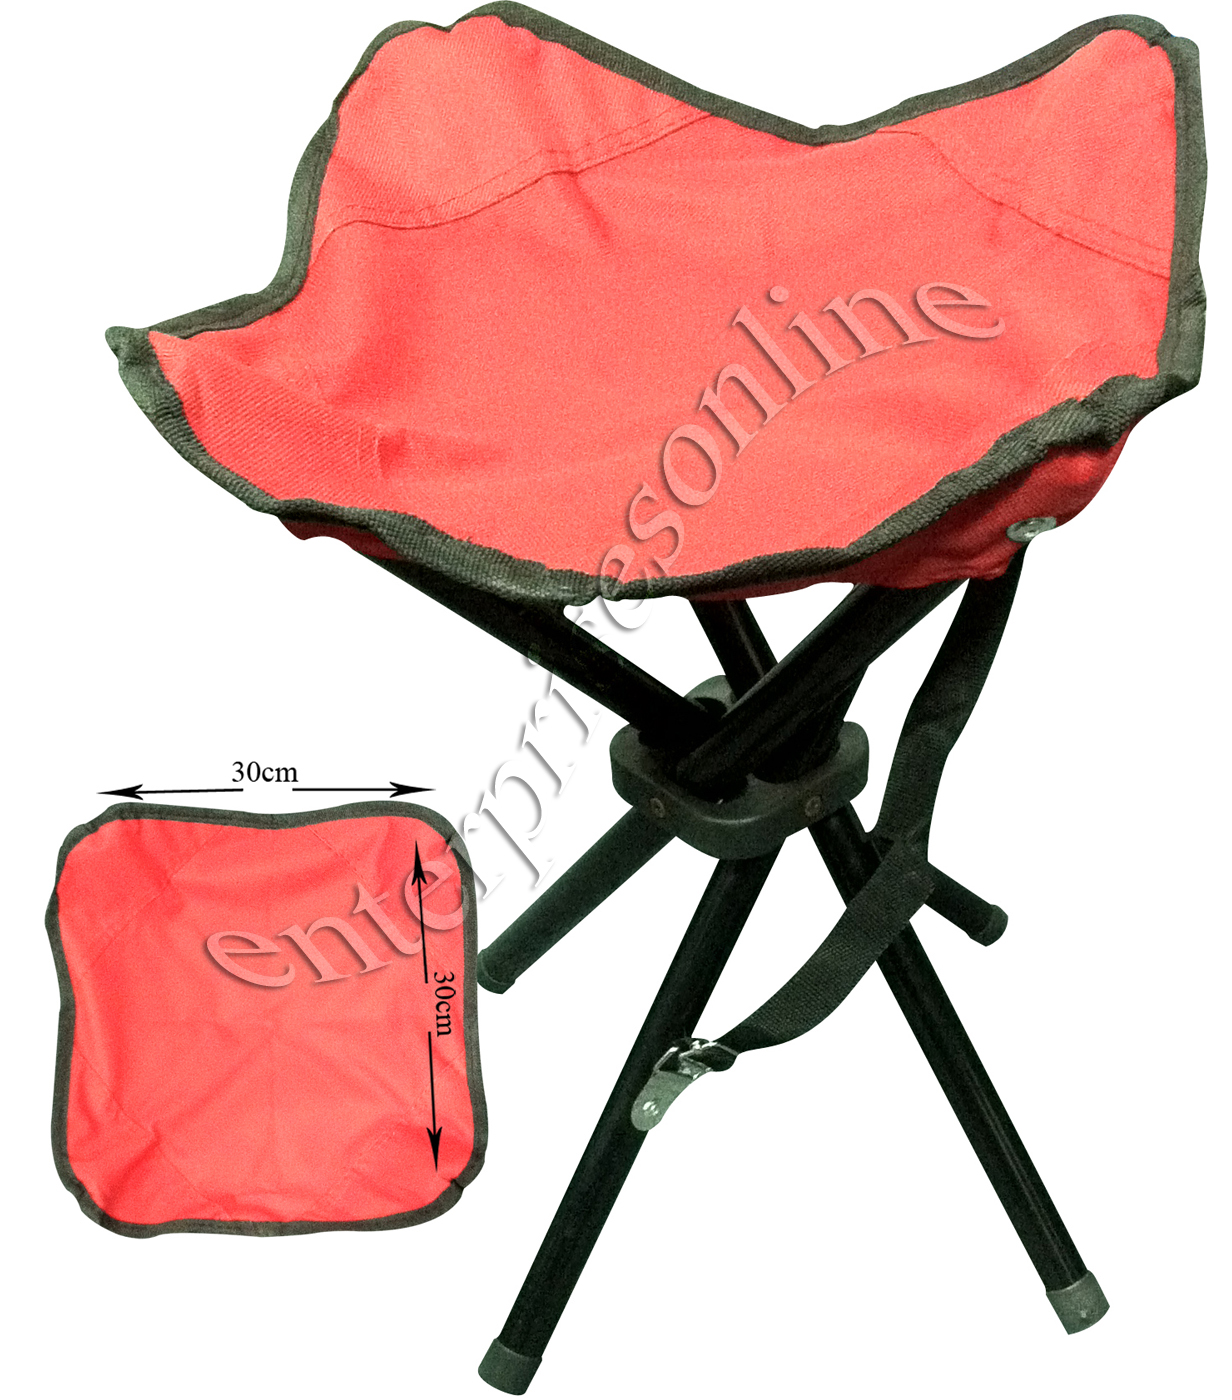 folding chair feet best back support for office singapore new portable 4 camping stool seat 3